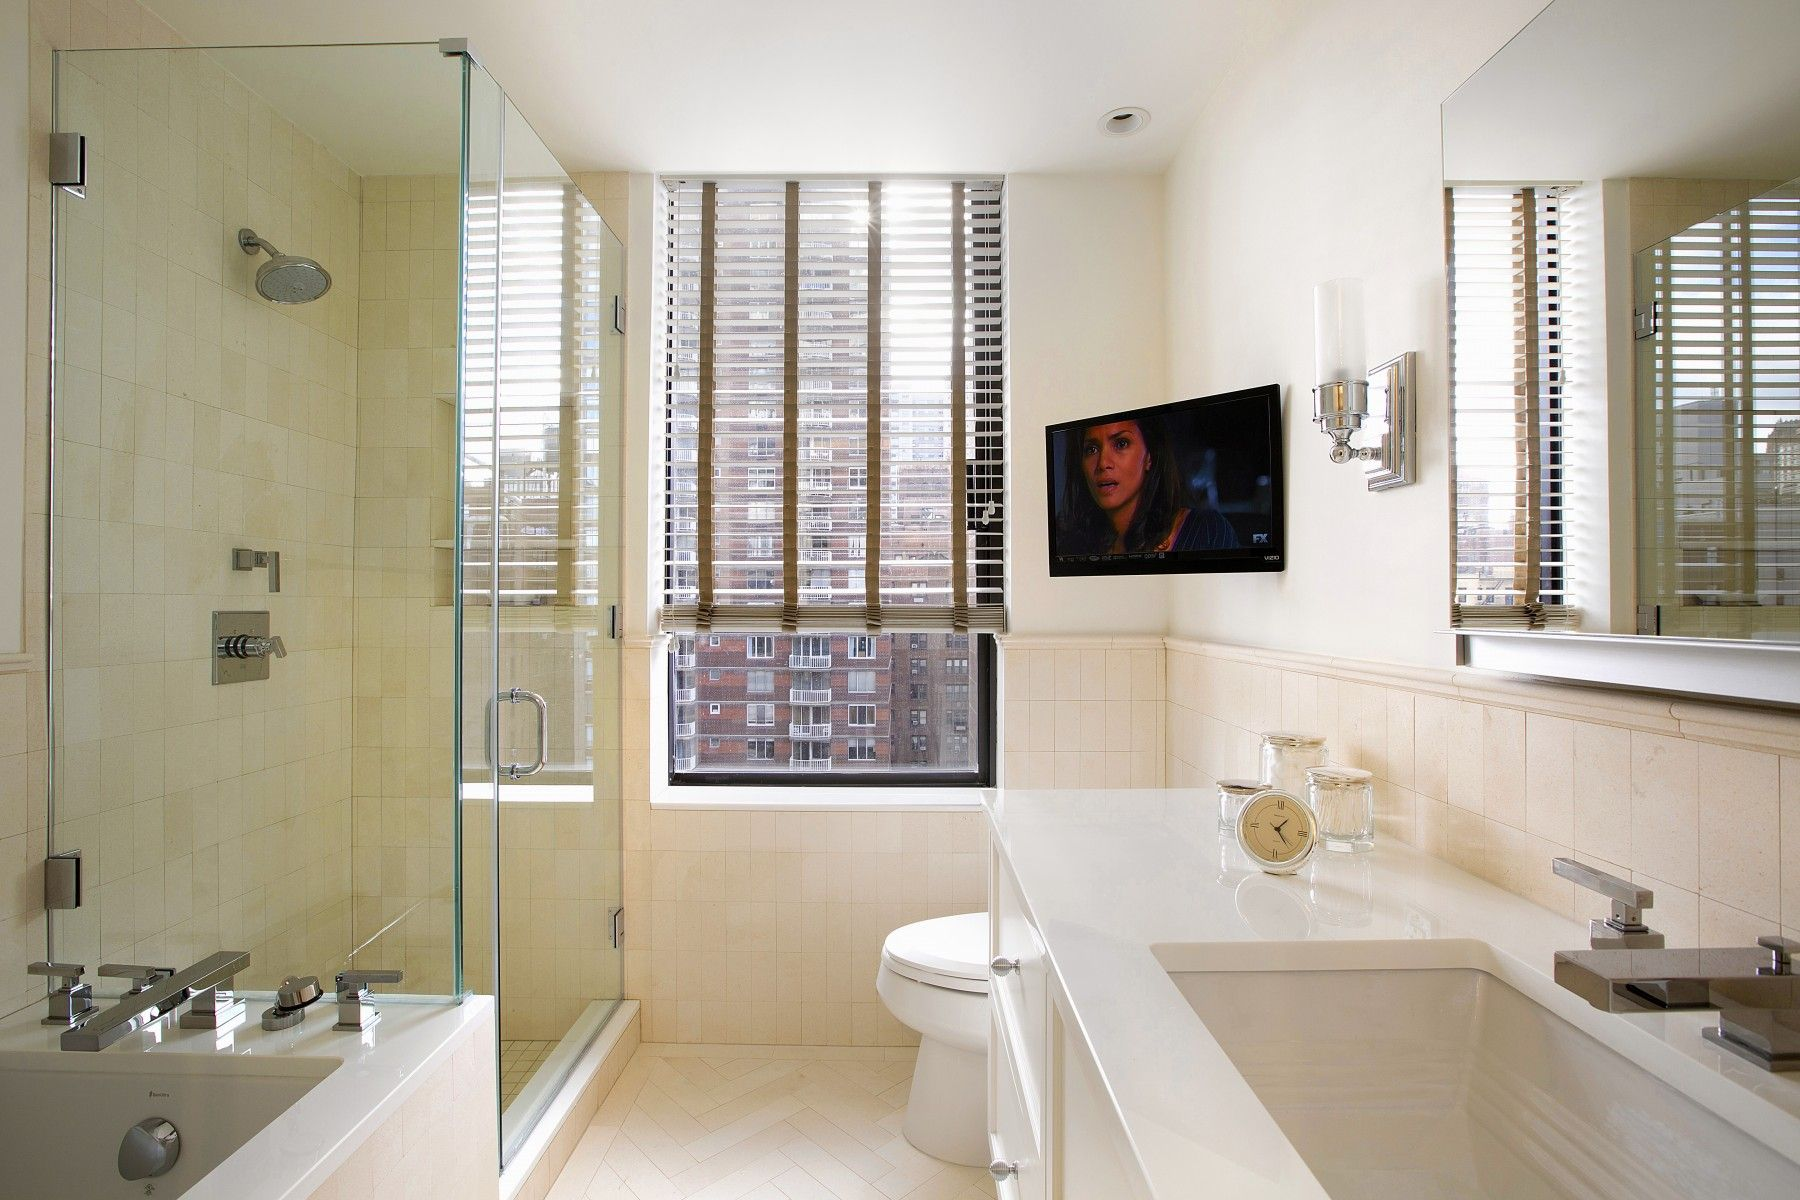 5x7 bathroom design - 140 East 59th Street Hers Bathroom Design And Remodel This Project Was A Bit More